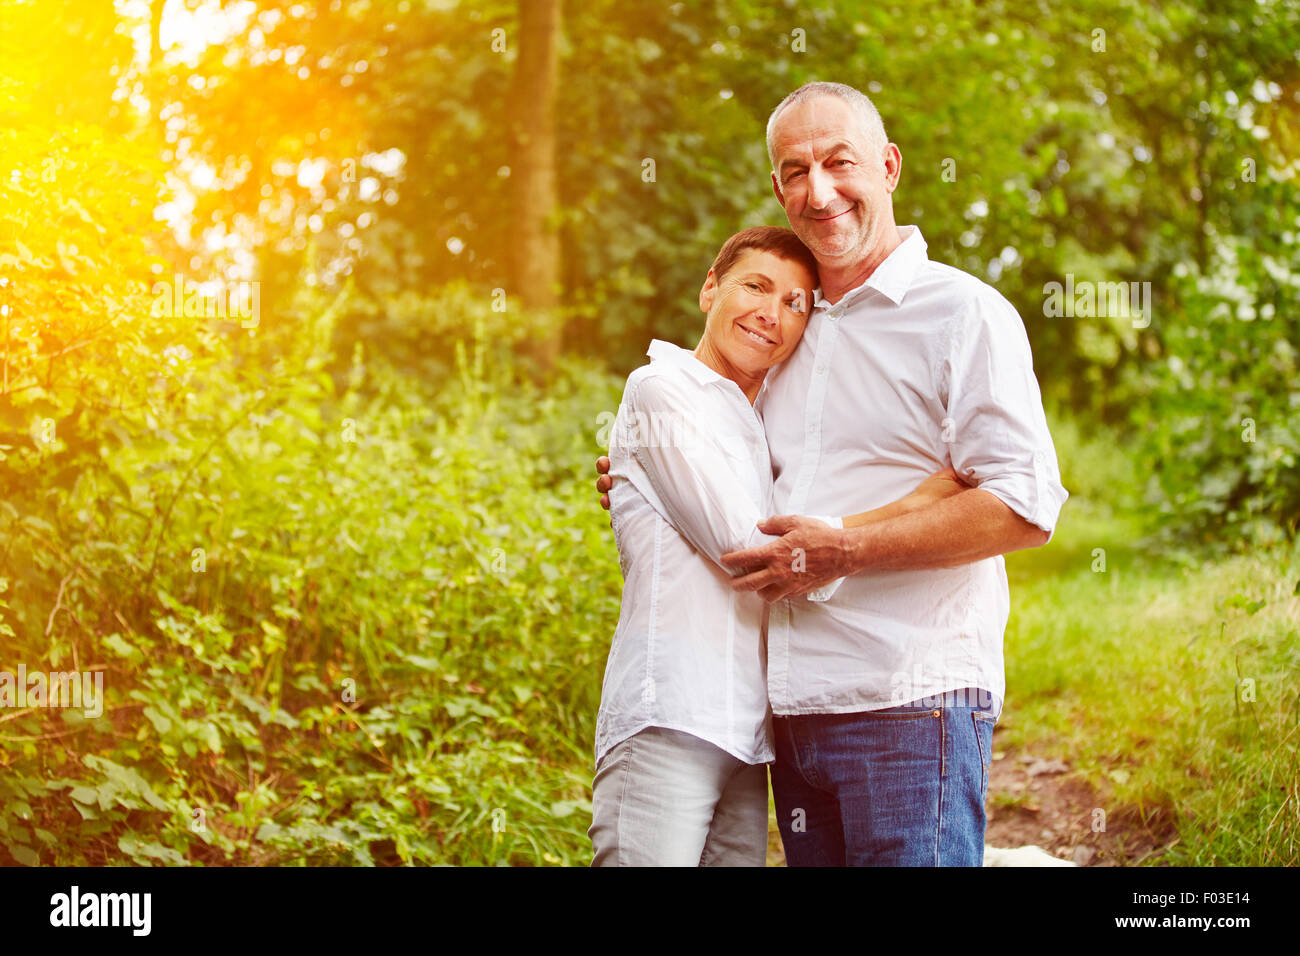 Happy smiling senior couple standing in a forest in summer - Stock Image